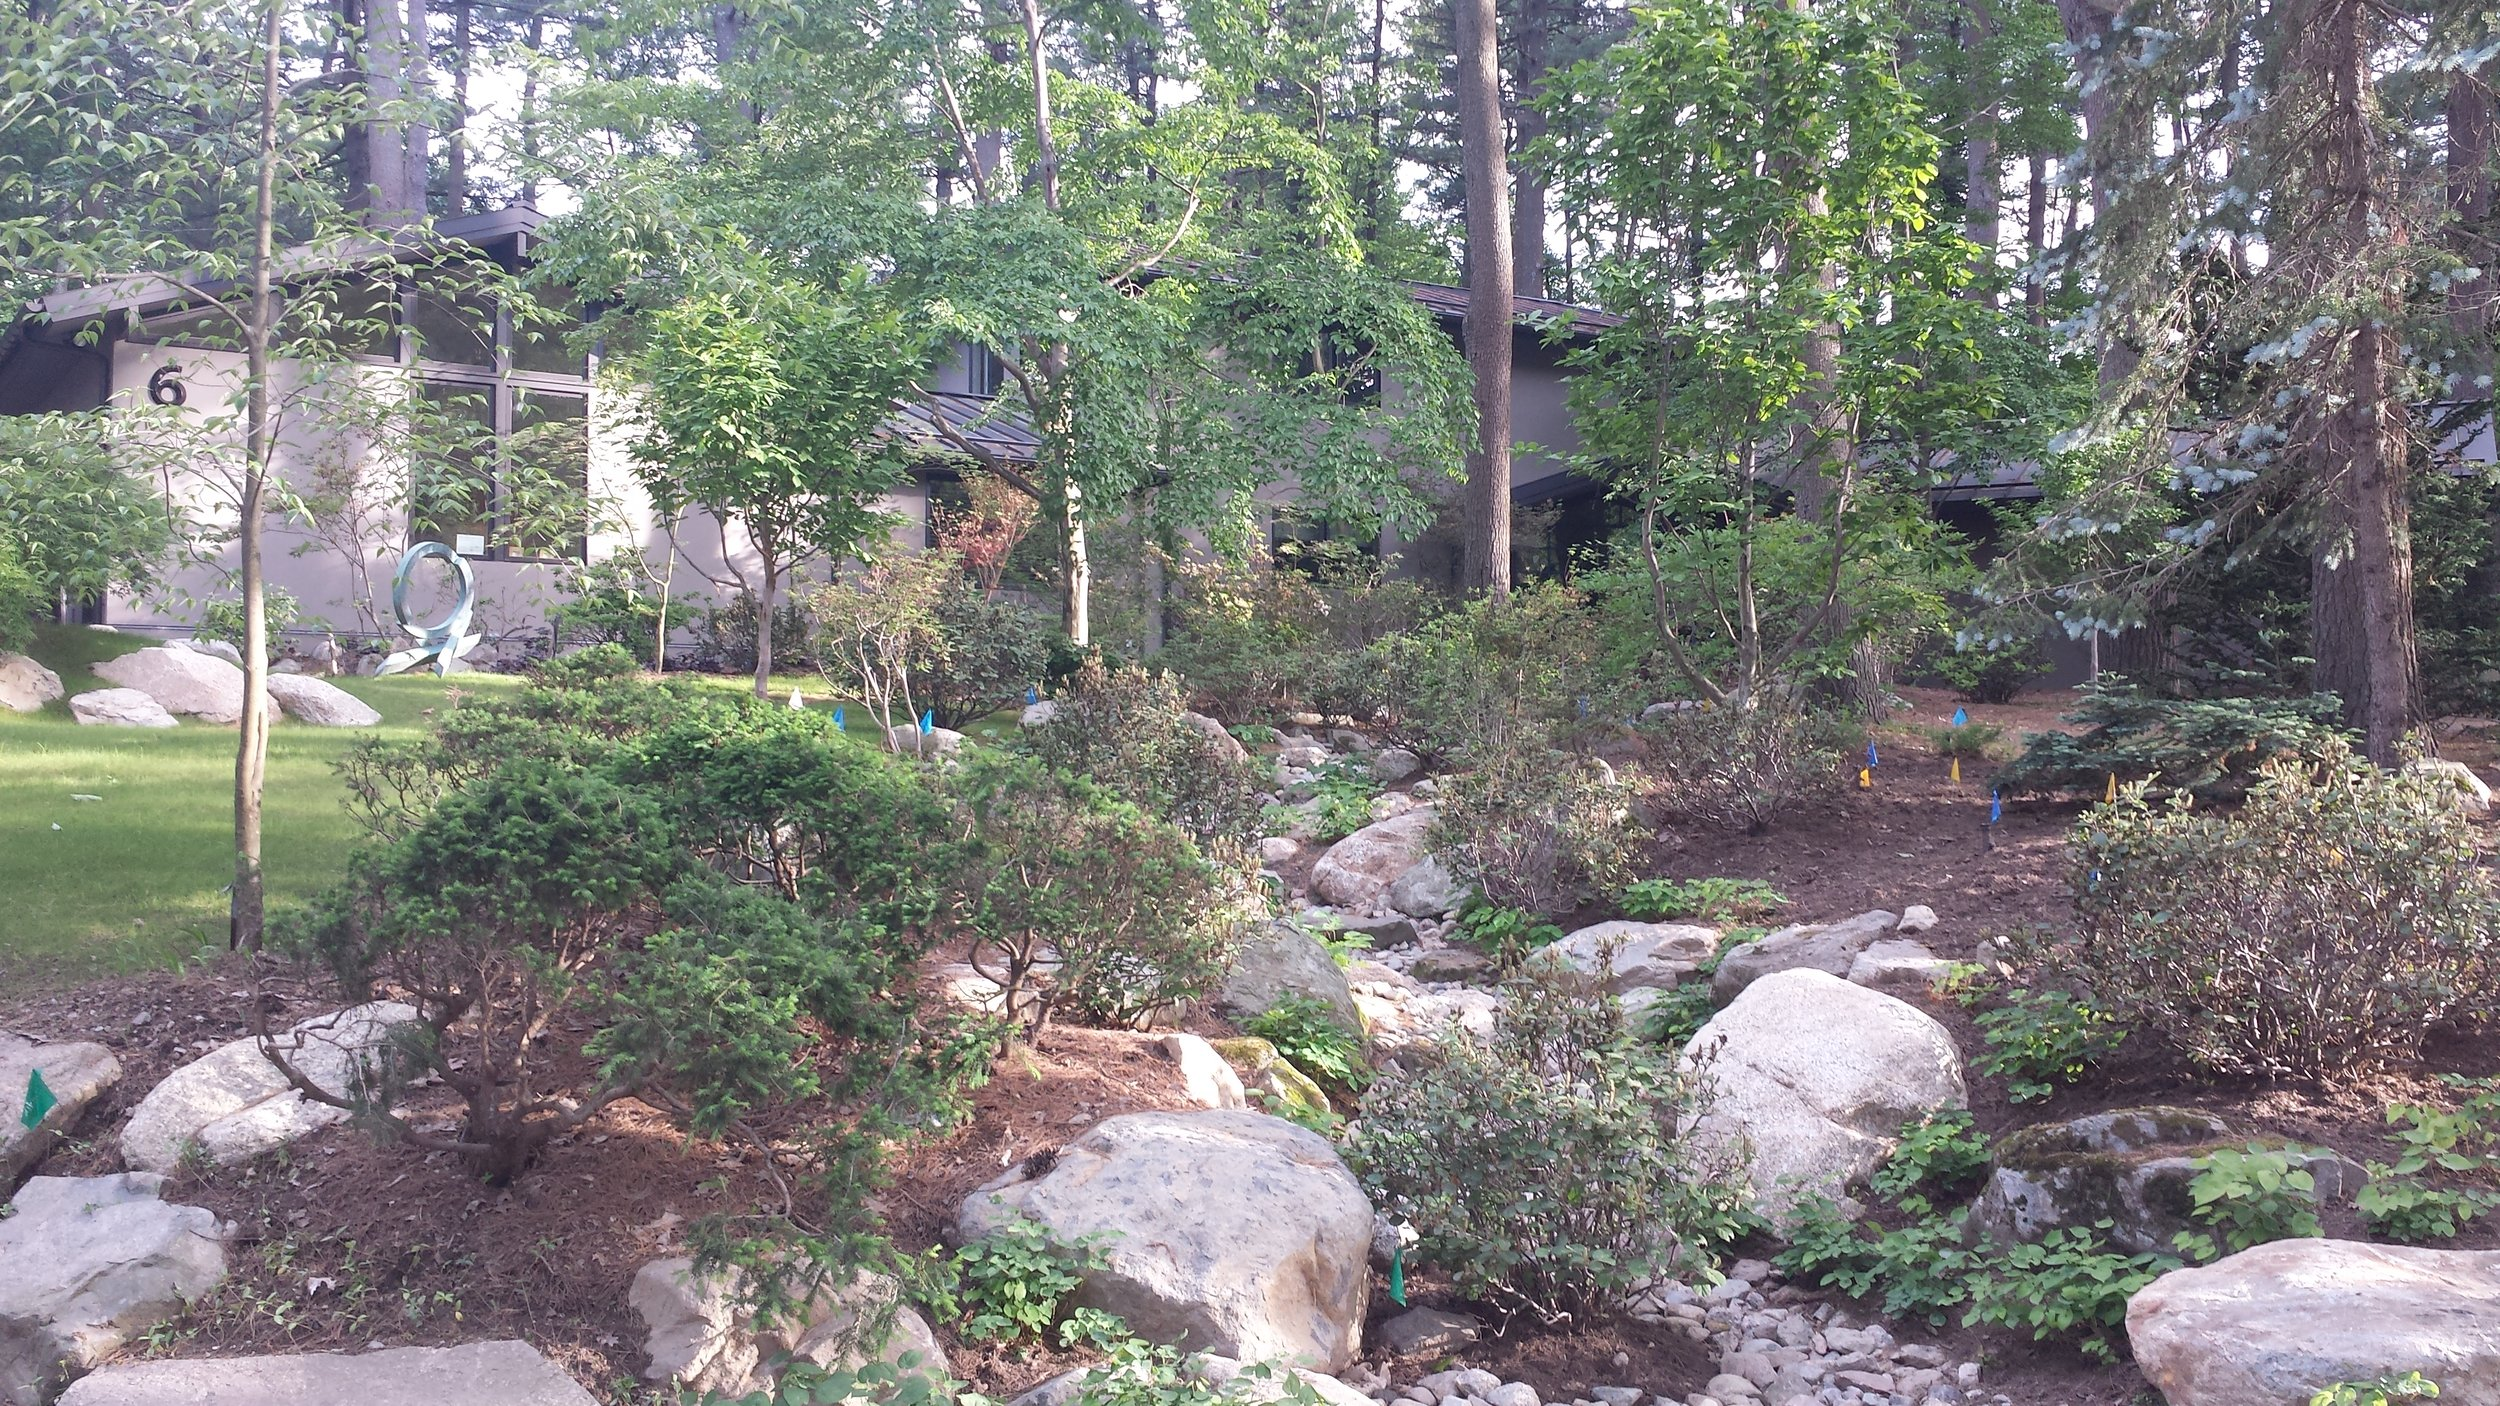 Weston MA - View from street. Dry river bed to deal with water run off. Mix of exotics and natives. Design by Hank Gilpin and BHS